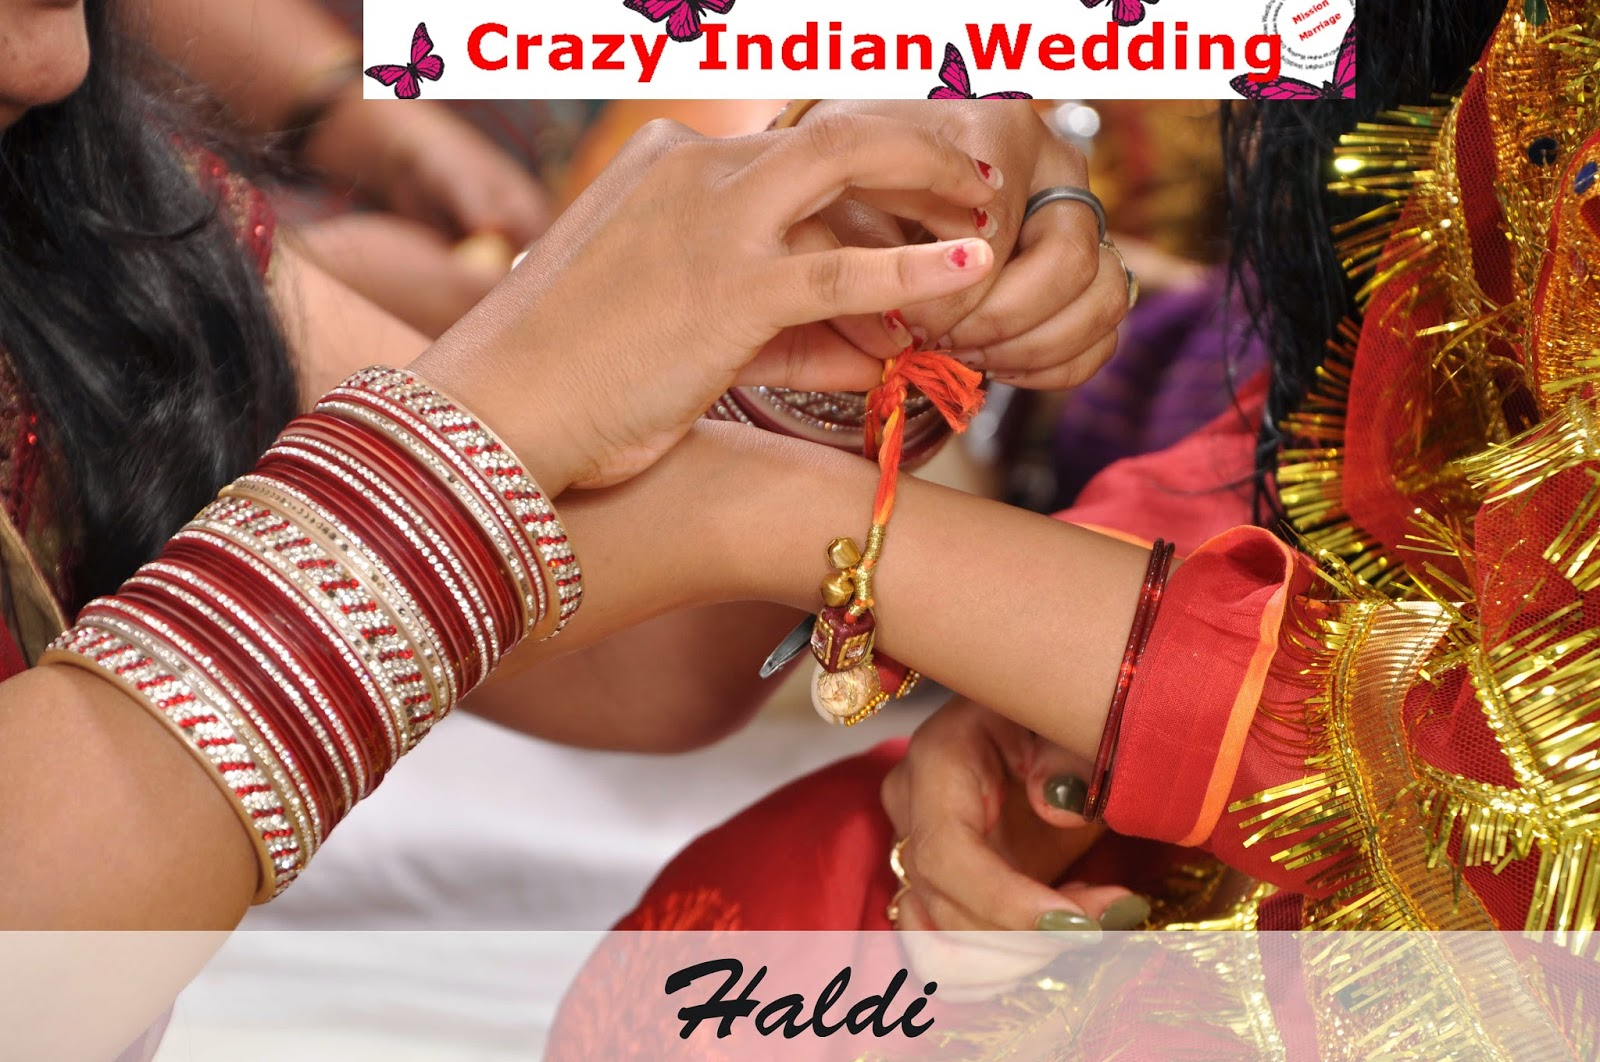 Crazy Indian Wedding Haldi